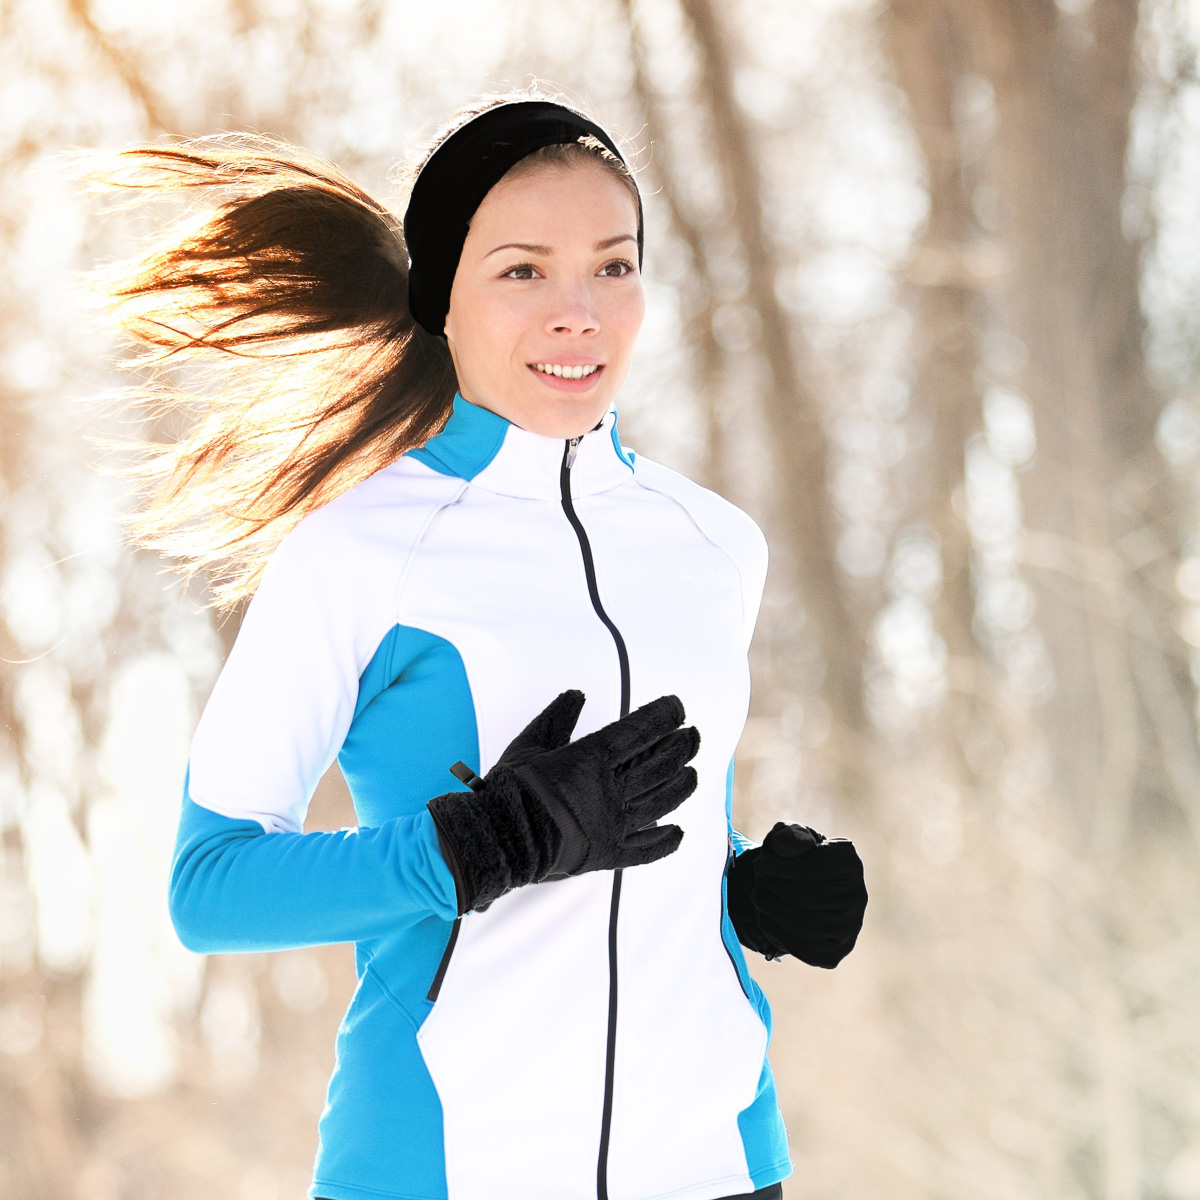 thumbnail 3 - Polar-Extreme-Womens-Touchscreen-Gloves-And-Headband-Set-For-Texting-Smartphone